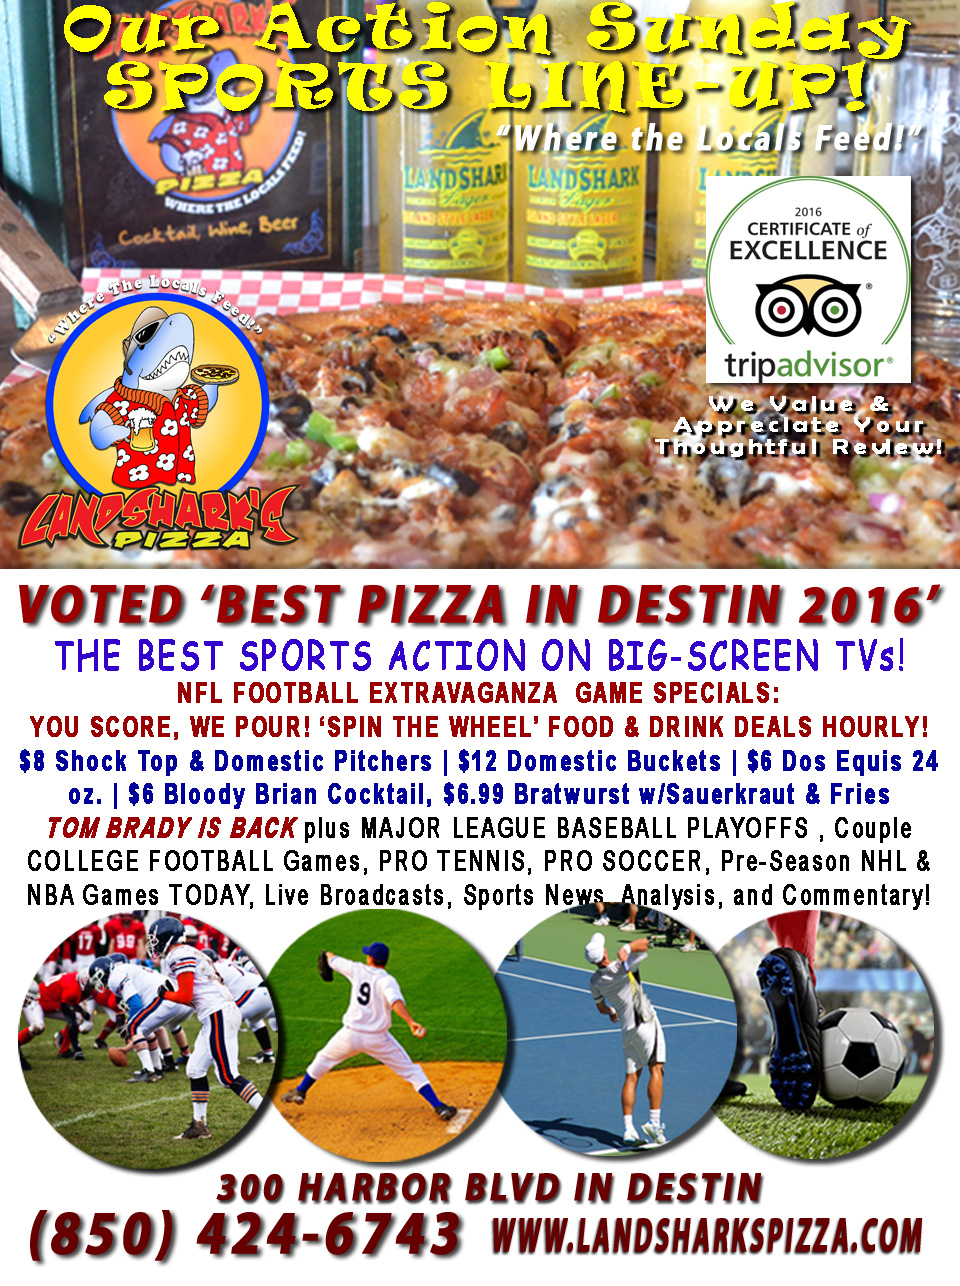 destin-nfl-football-at-landsharks-pizza-food-and-drink-specials-weekly-10-09-16